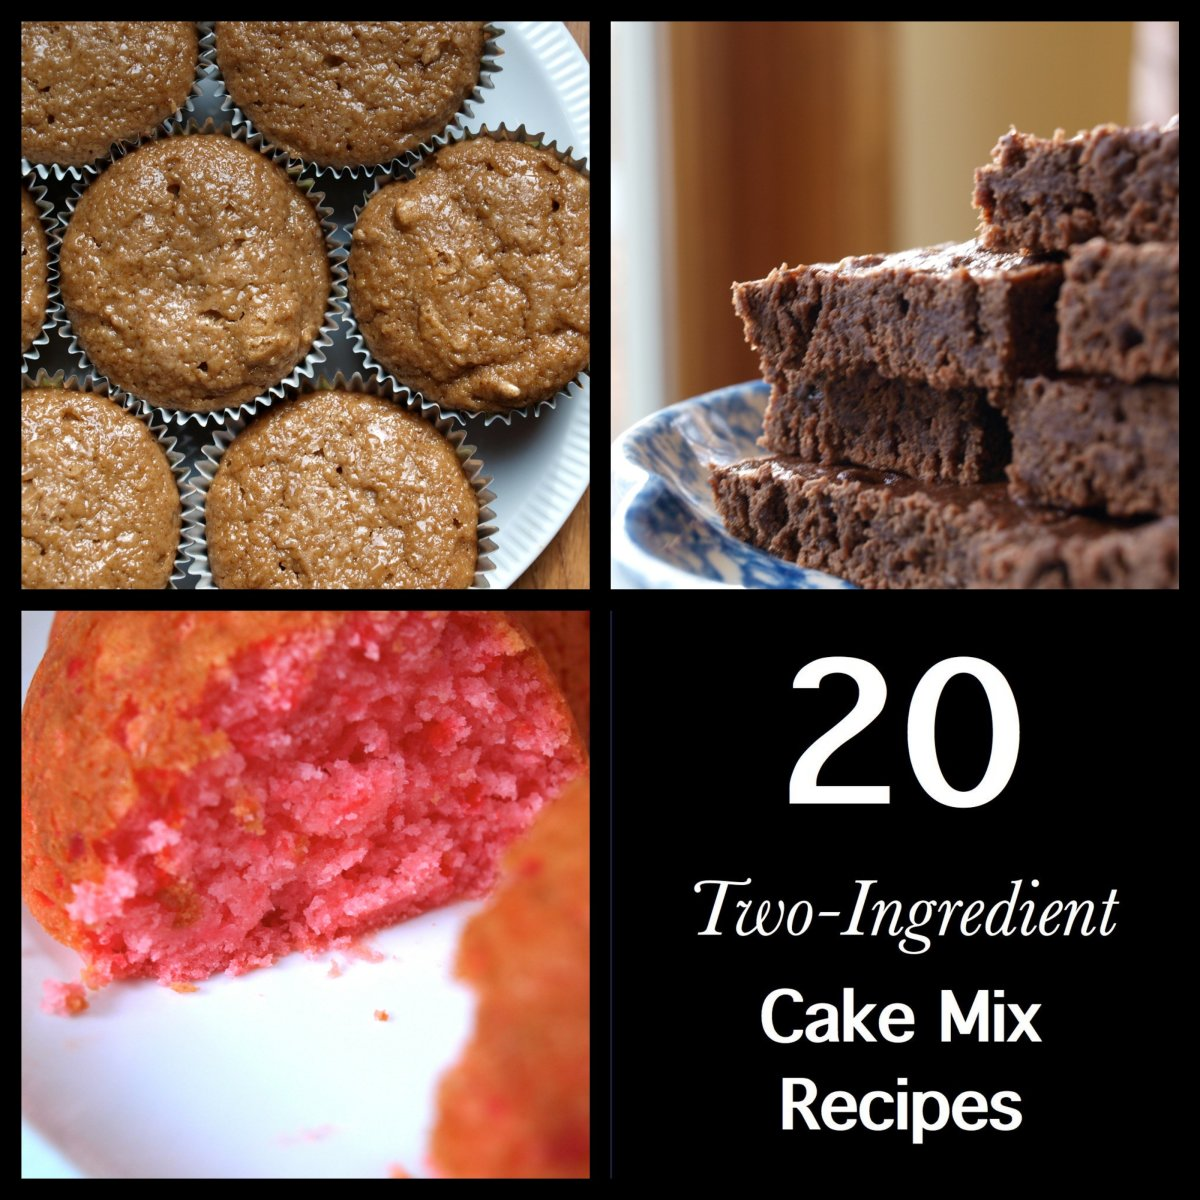 20 Two-Ingredient Cake Mix Recipes